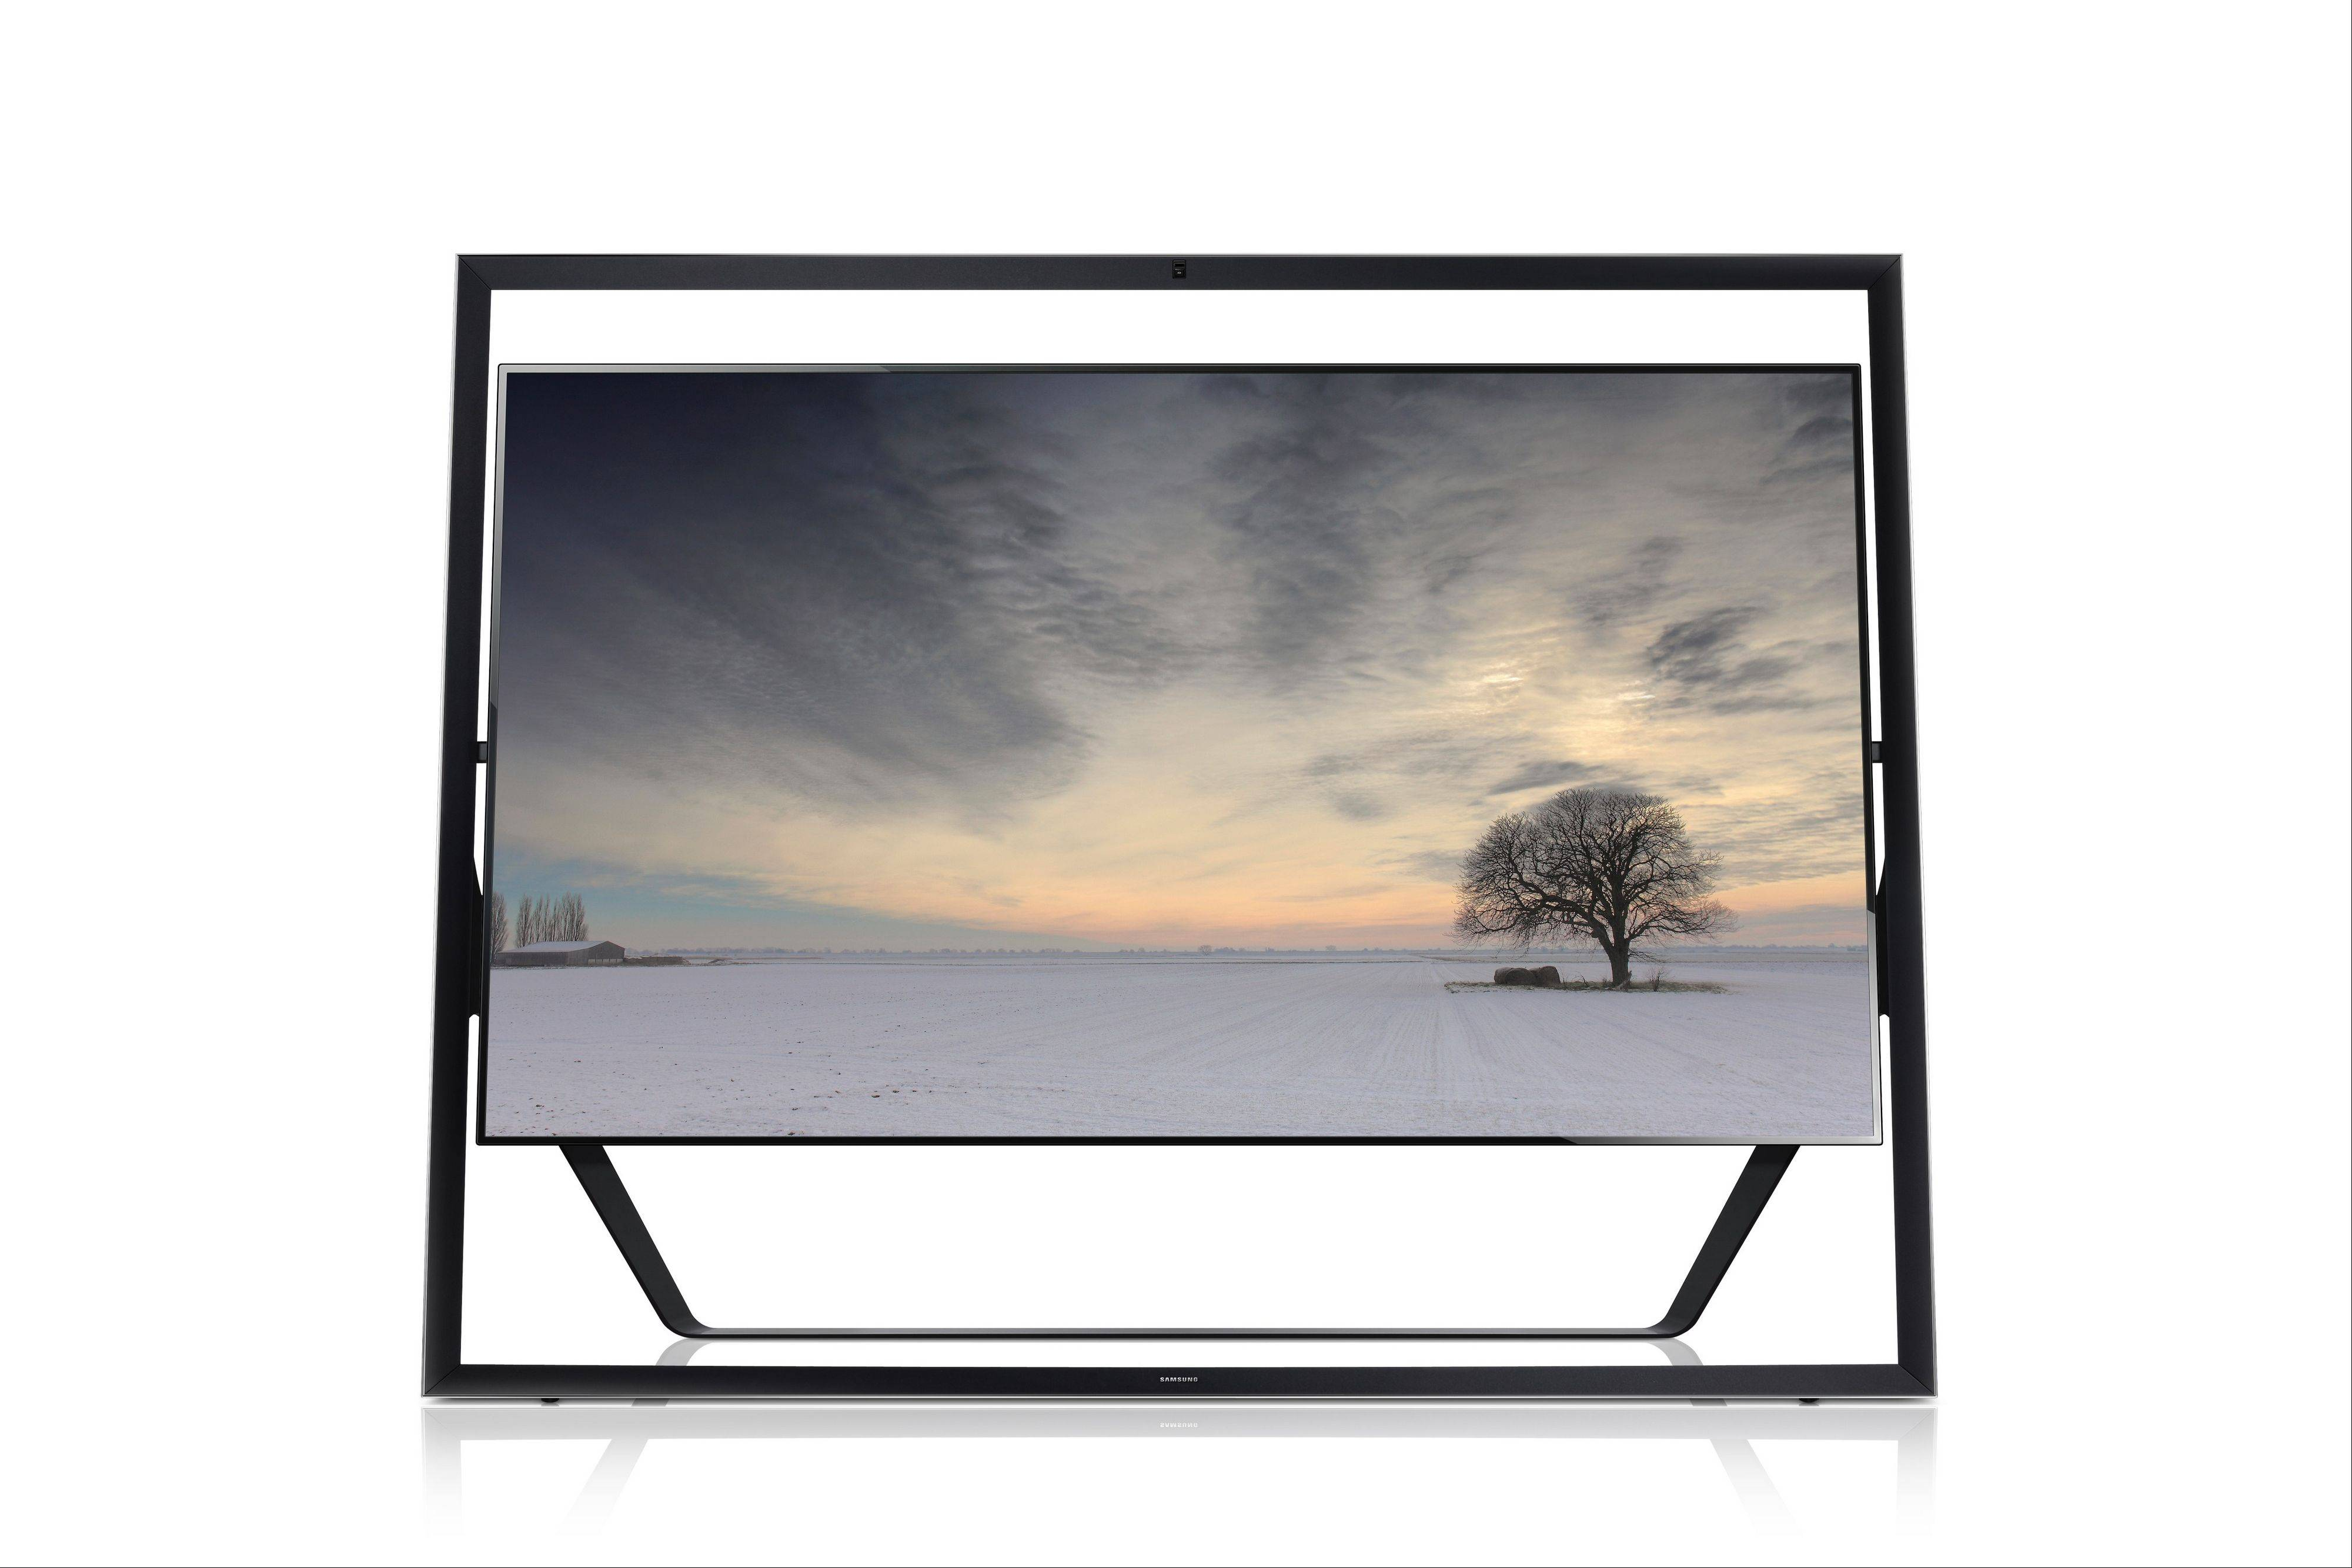 This 85-inch Samsung TV screen with four times the clarity of a regular high-definition TV has a picture that is startling -- and a $40,000 price tag to match.